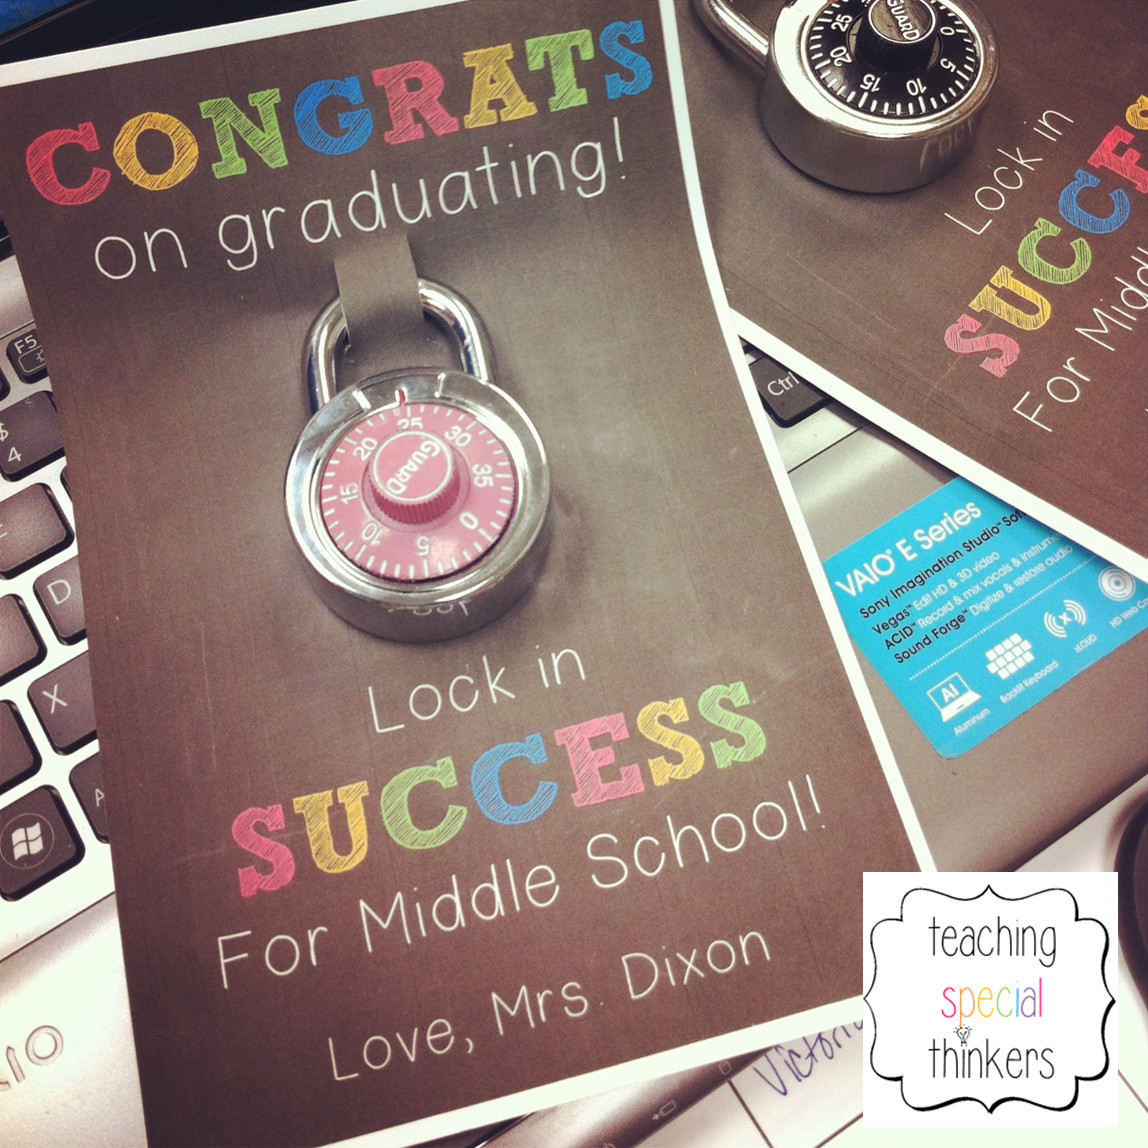 Best ideas about Middle School Graduation Gift Ideas . Save or Pin Lock in Success – Student Gift for soon to be Middle Now.